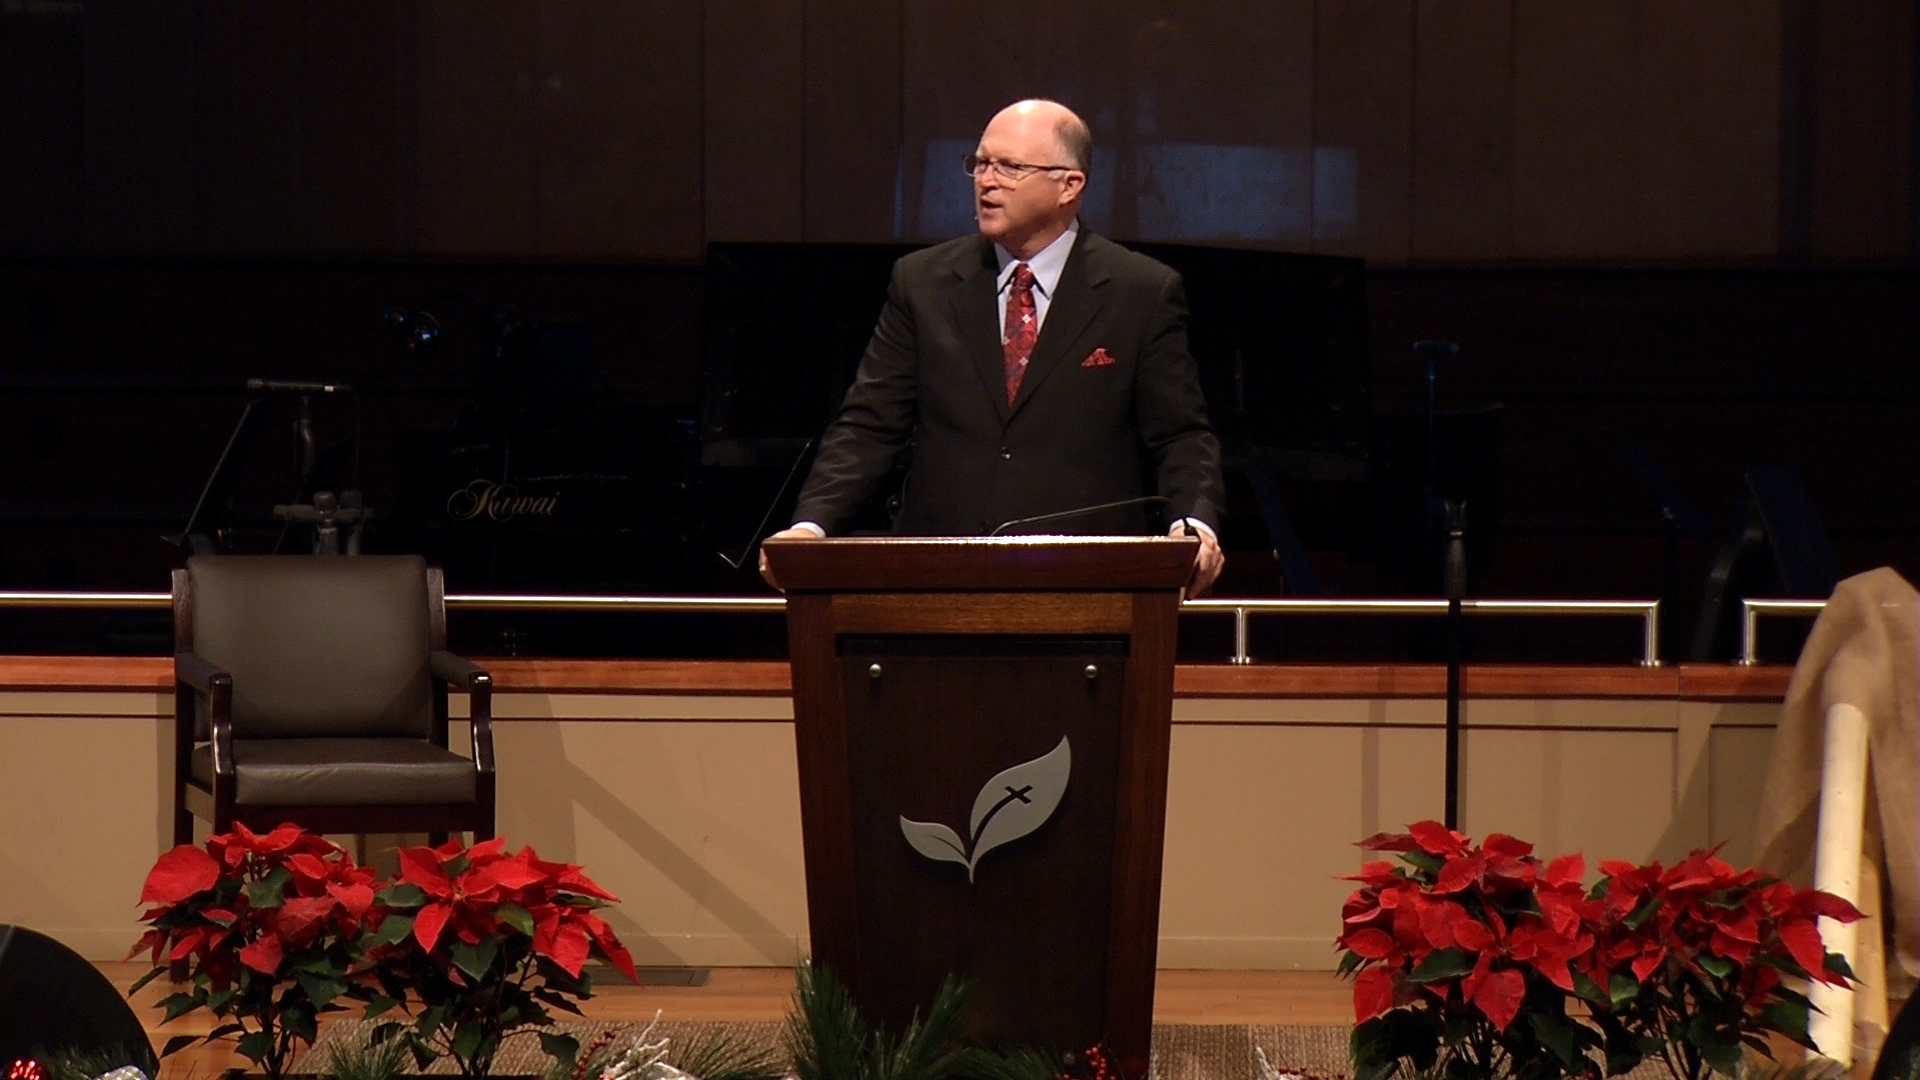 Pastor Paul Chappell: Mary's Pondering